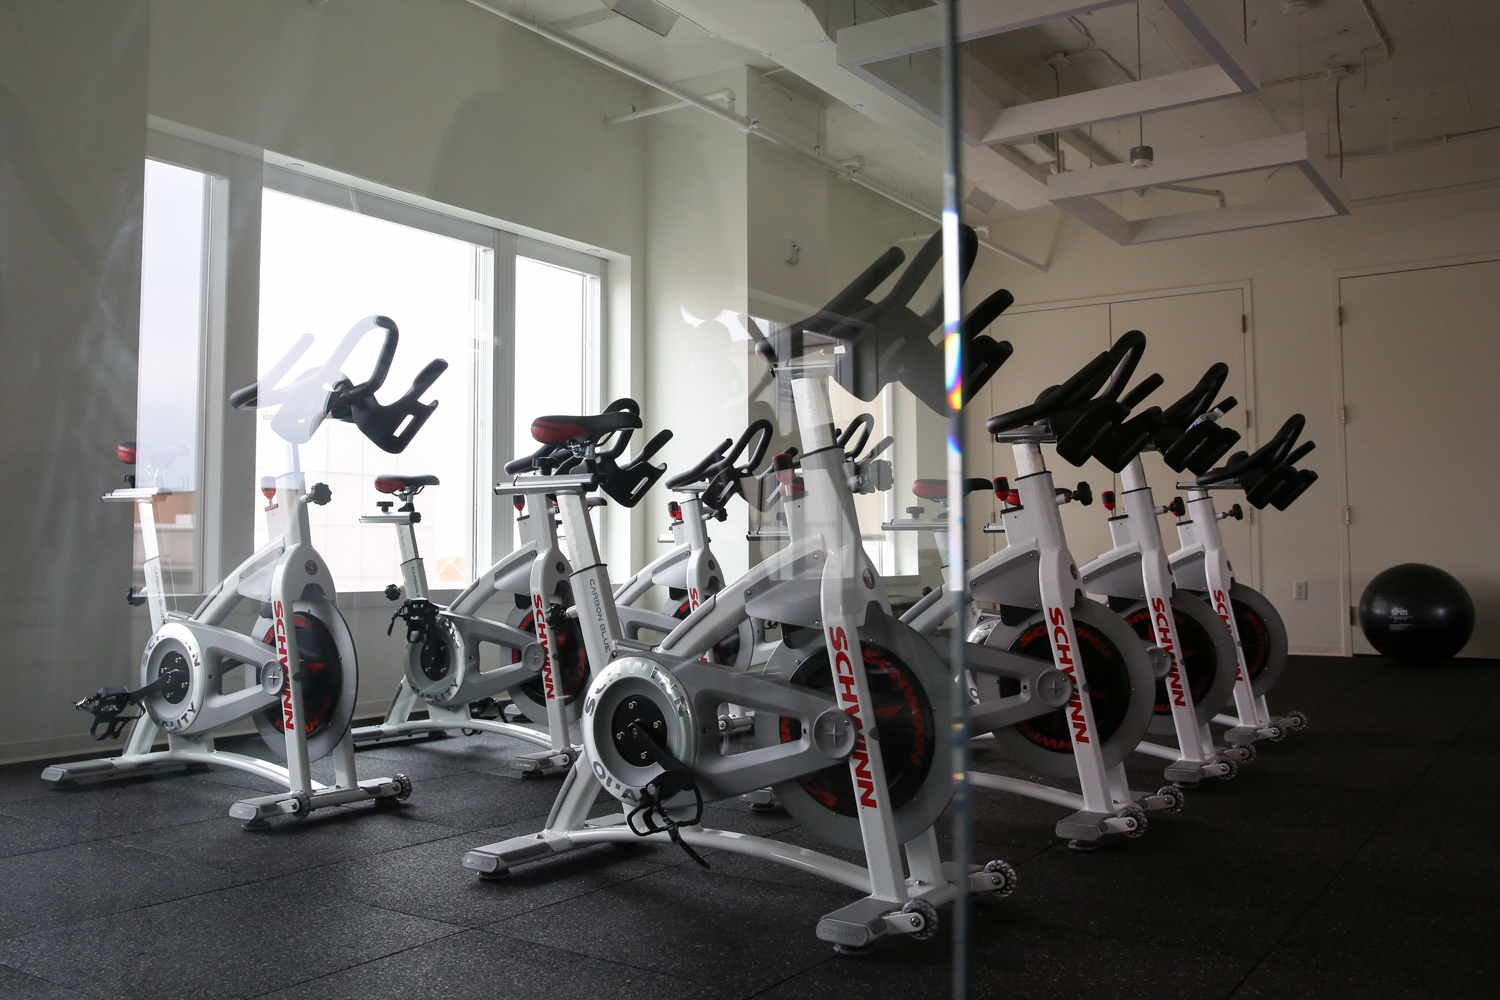 The Peloton bikes allow employees to get in workouts that work for their schedule, whether that is an intense 15-minute class or a full 60-minute ride. (Image: Amanda Andrade-Rhoades/ DC Refined)